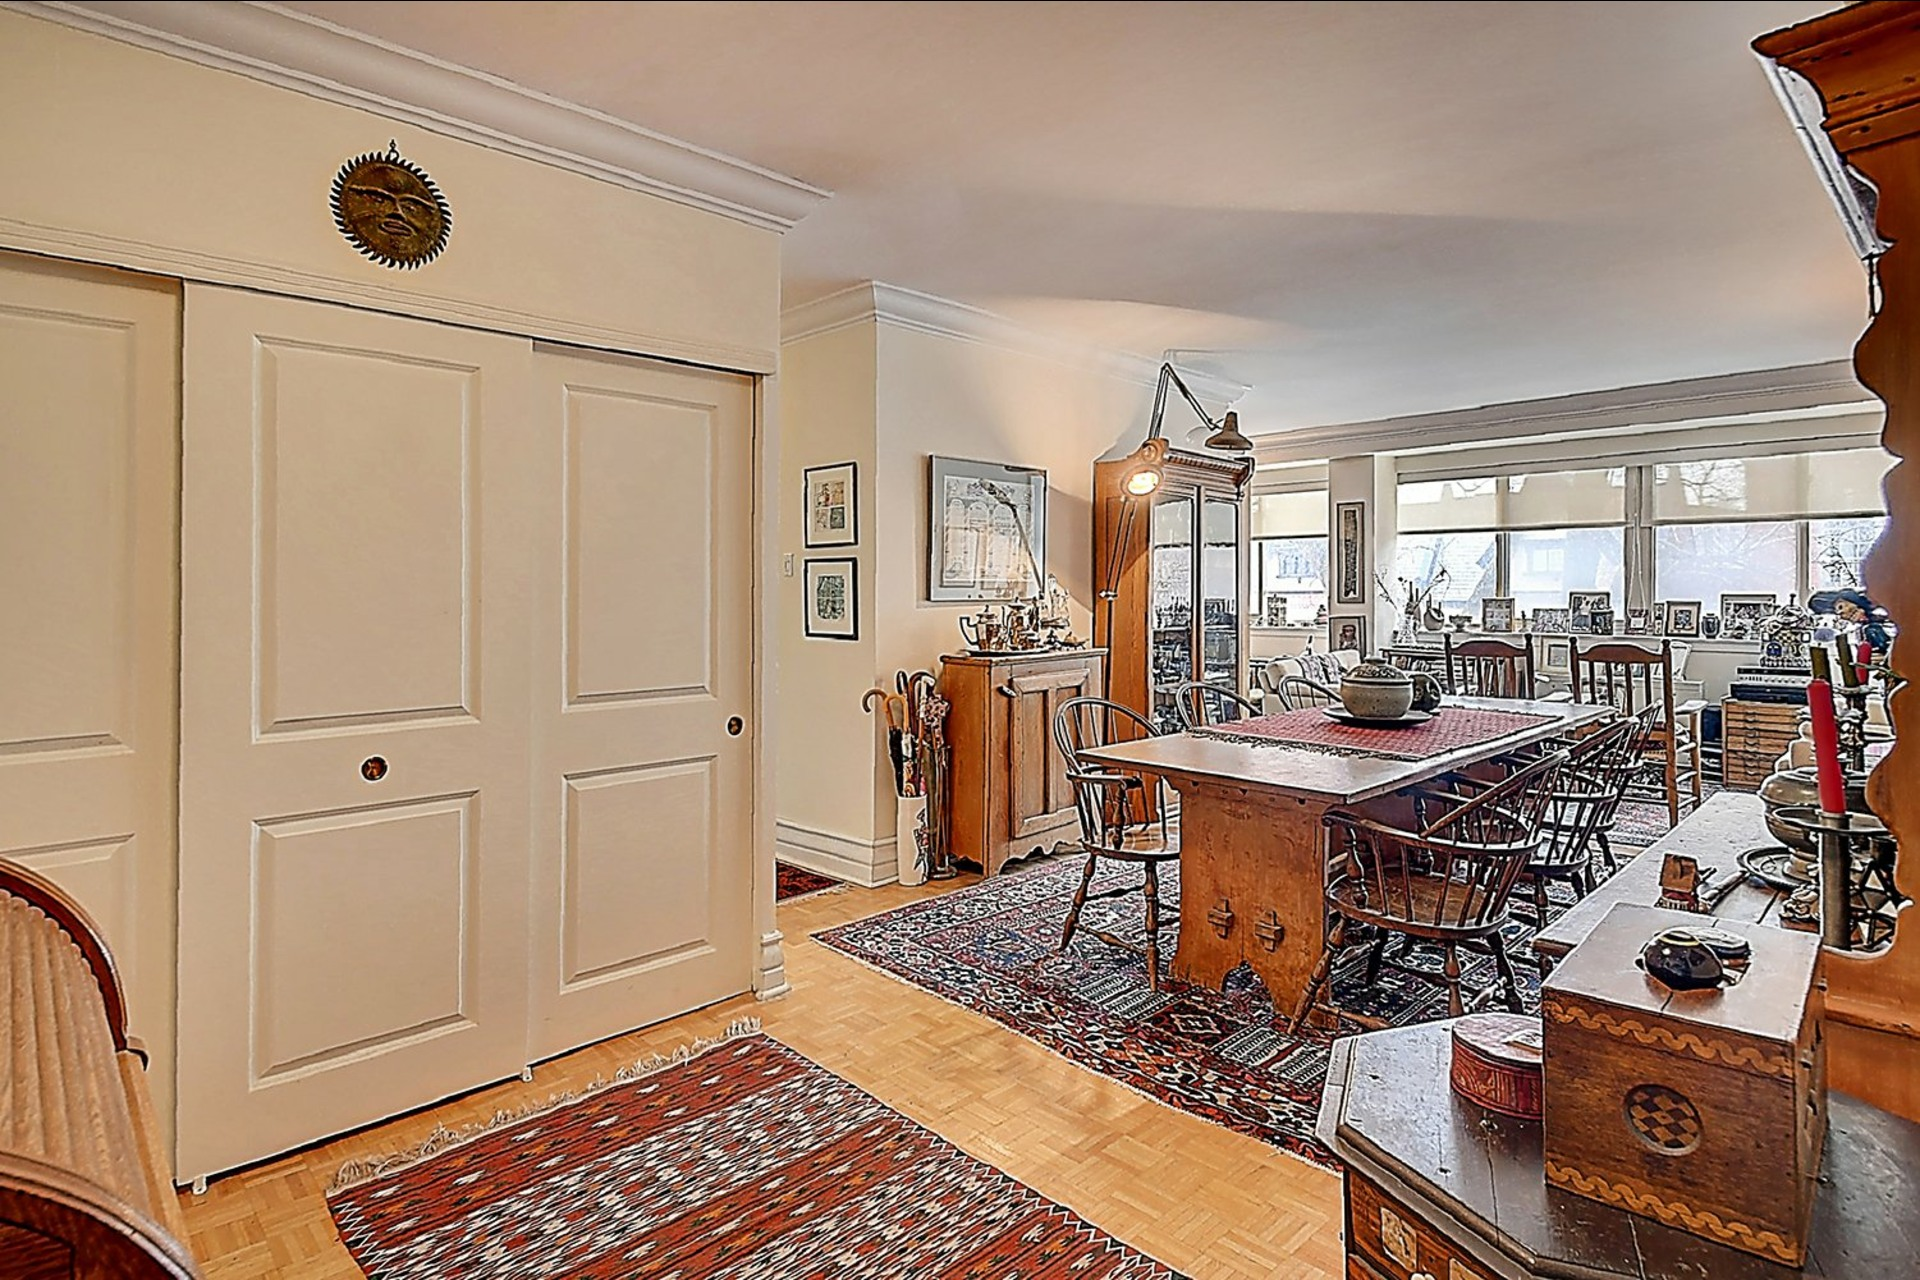 image 3 - Apartment For sale Westmount - 5 rooms